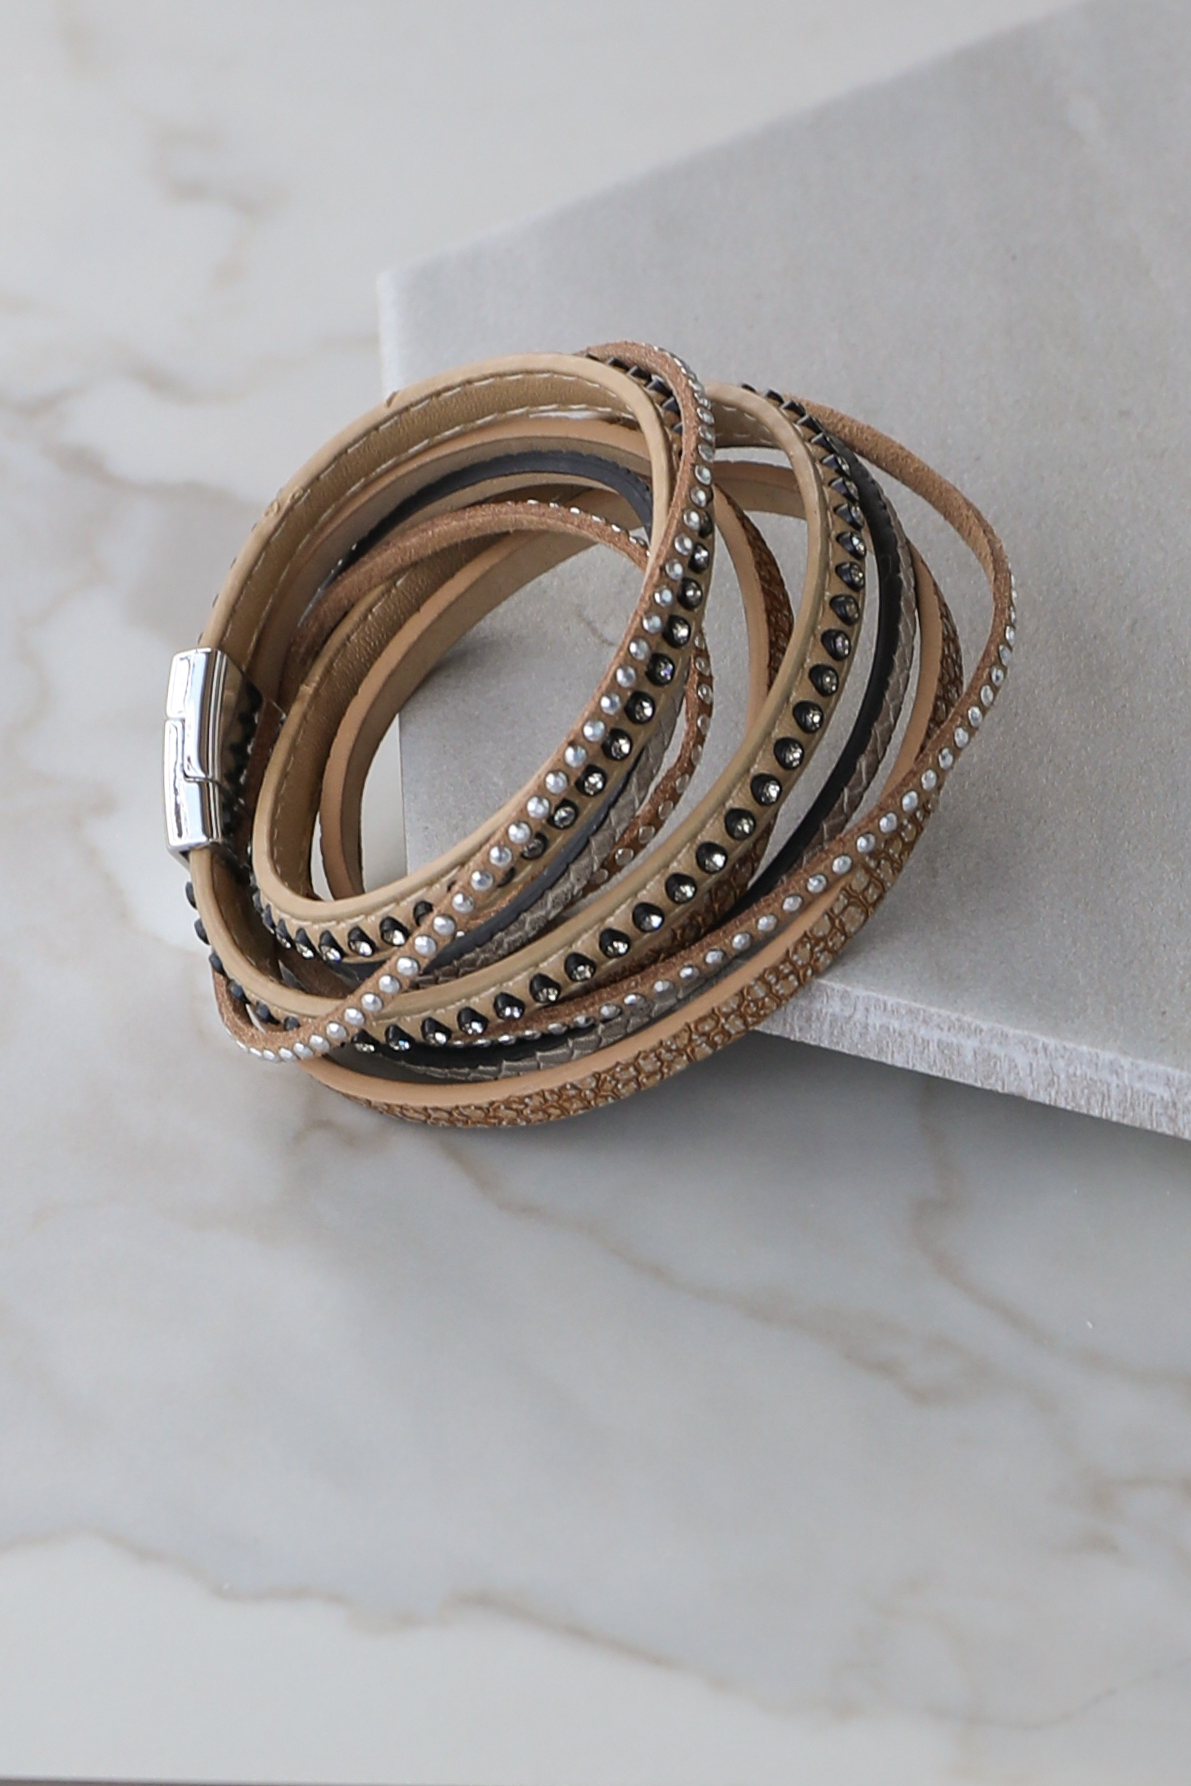 Tan and Silver Wrap Bracelet with Diamonds and Snake Print